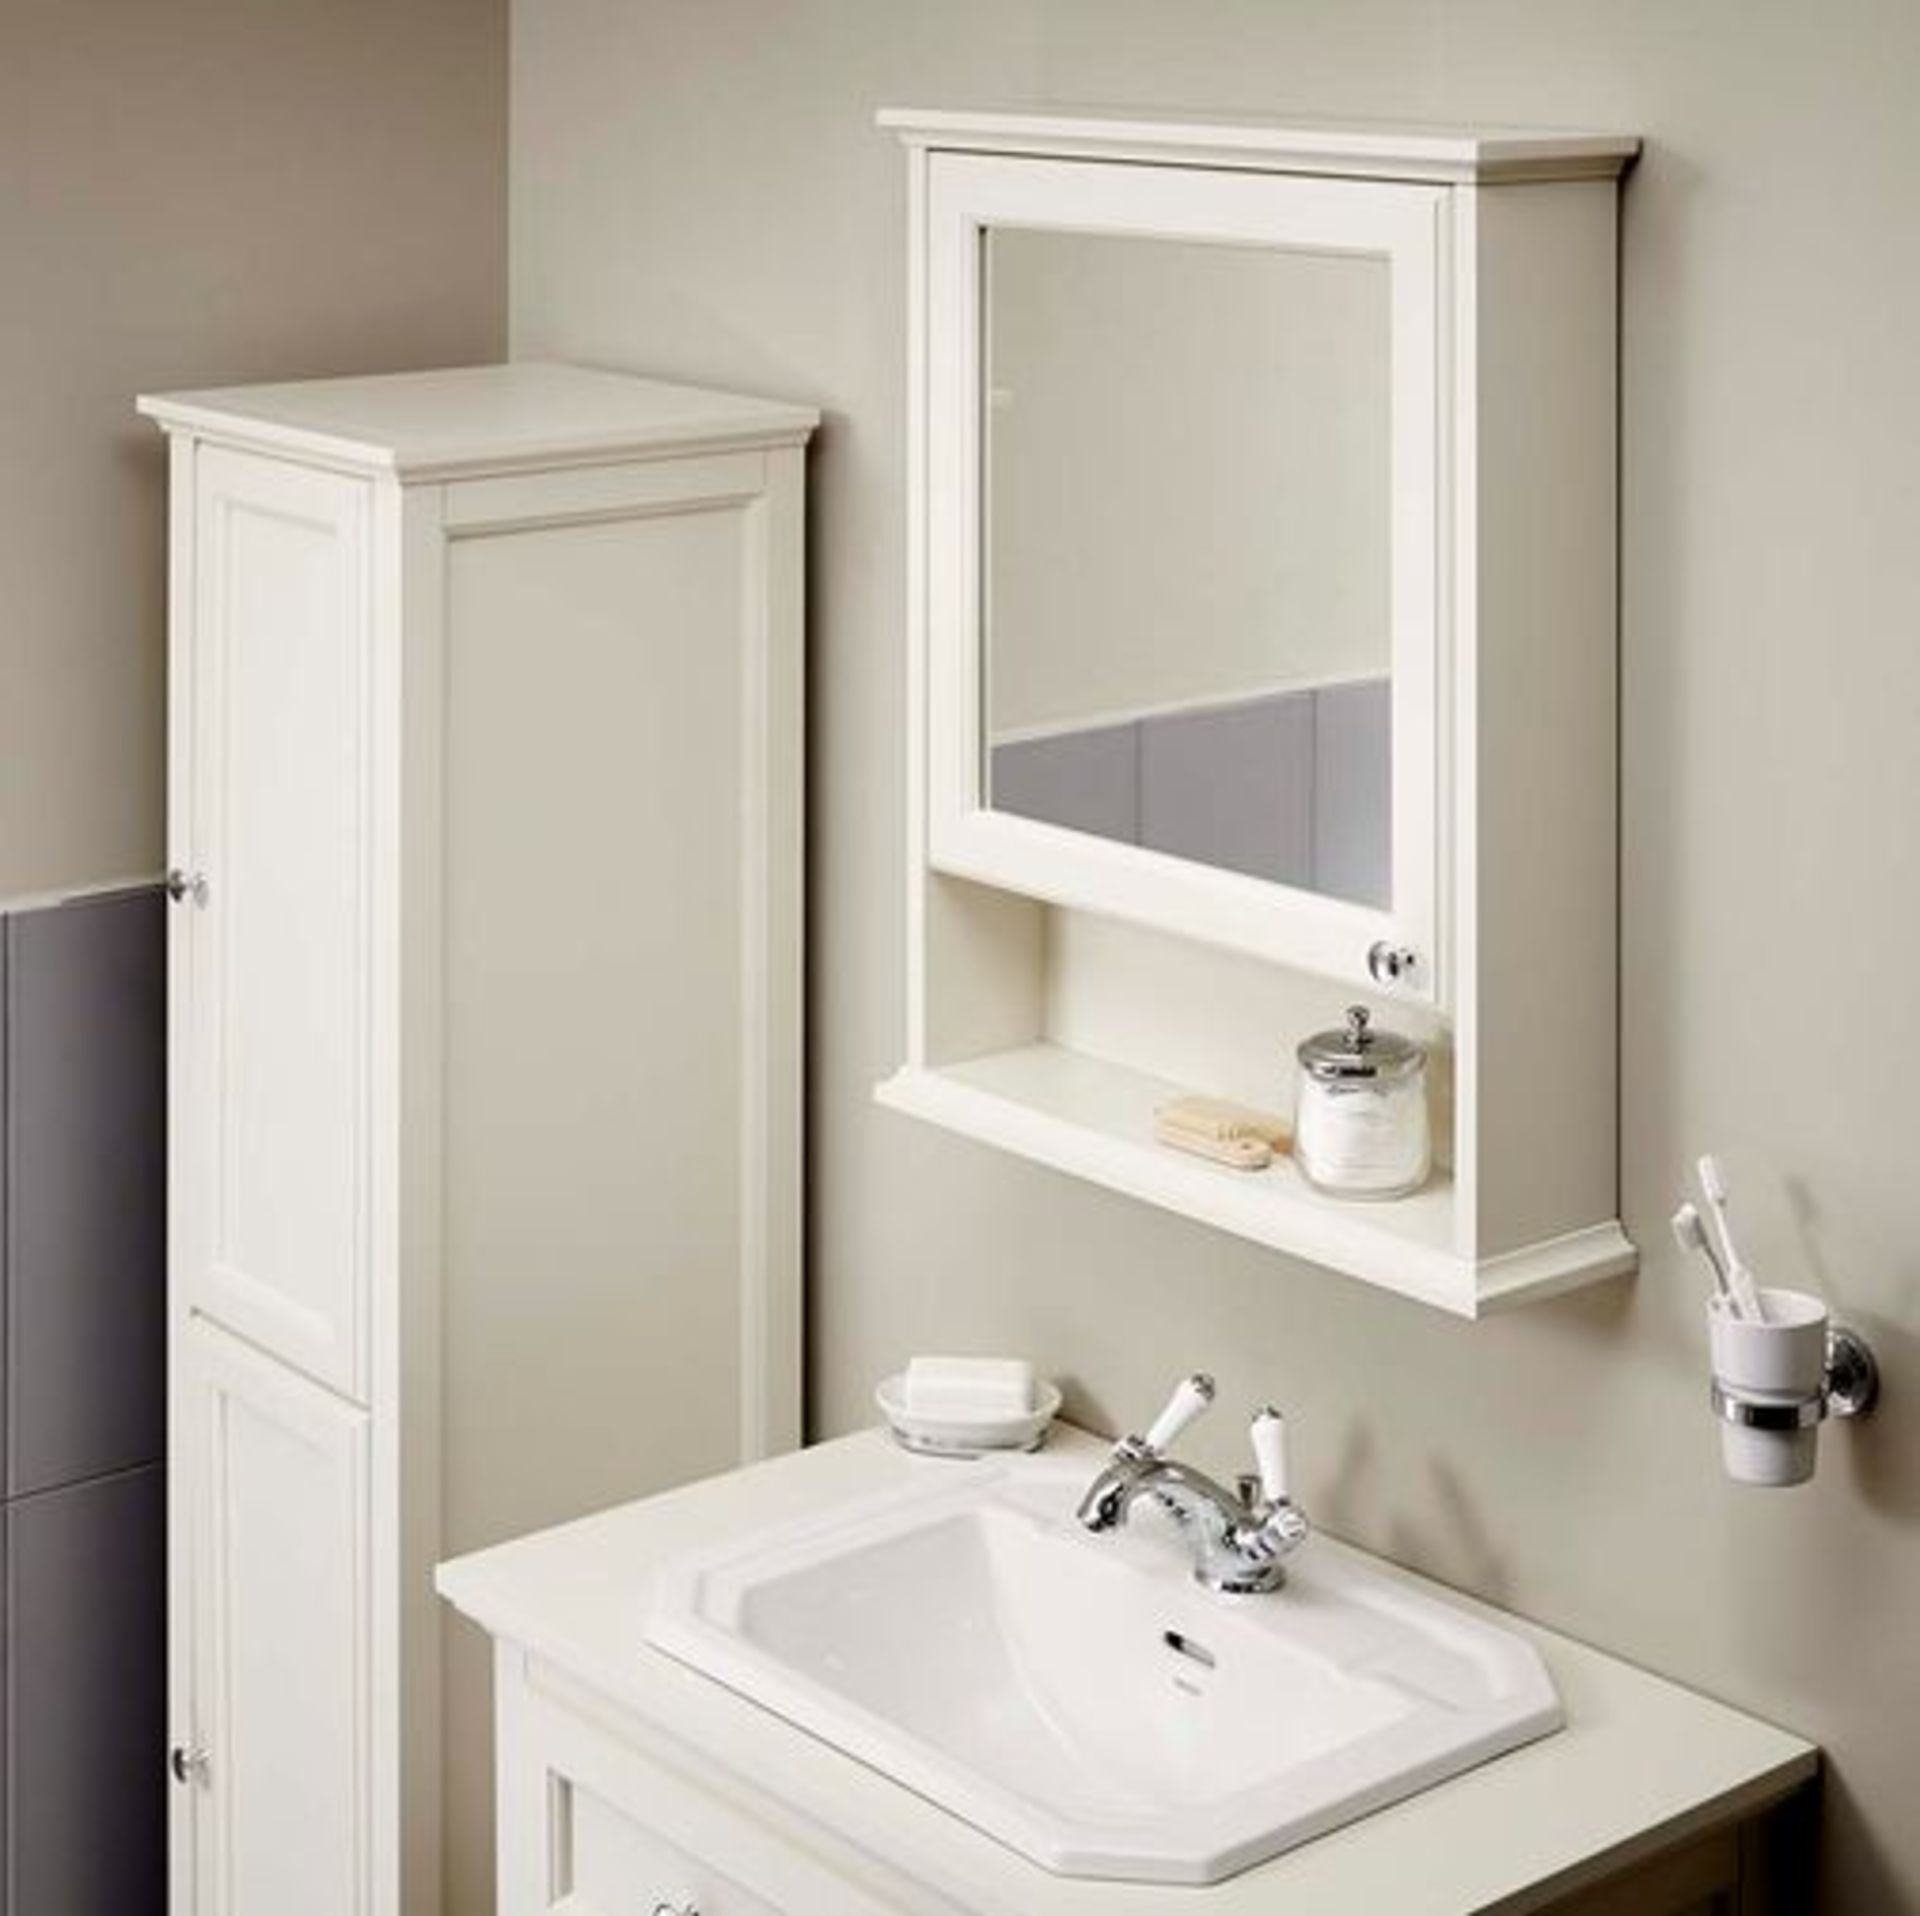 Lot 31 - SAVOY 570MM TRADITIONAL MIRROR CABINET WITH OPEN SHELF, SOFT CLOSE DOOR AND CHROME BUTTOM HANDLE.